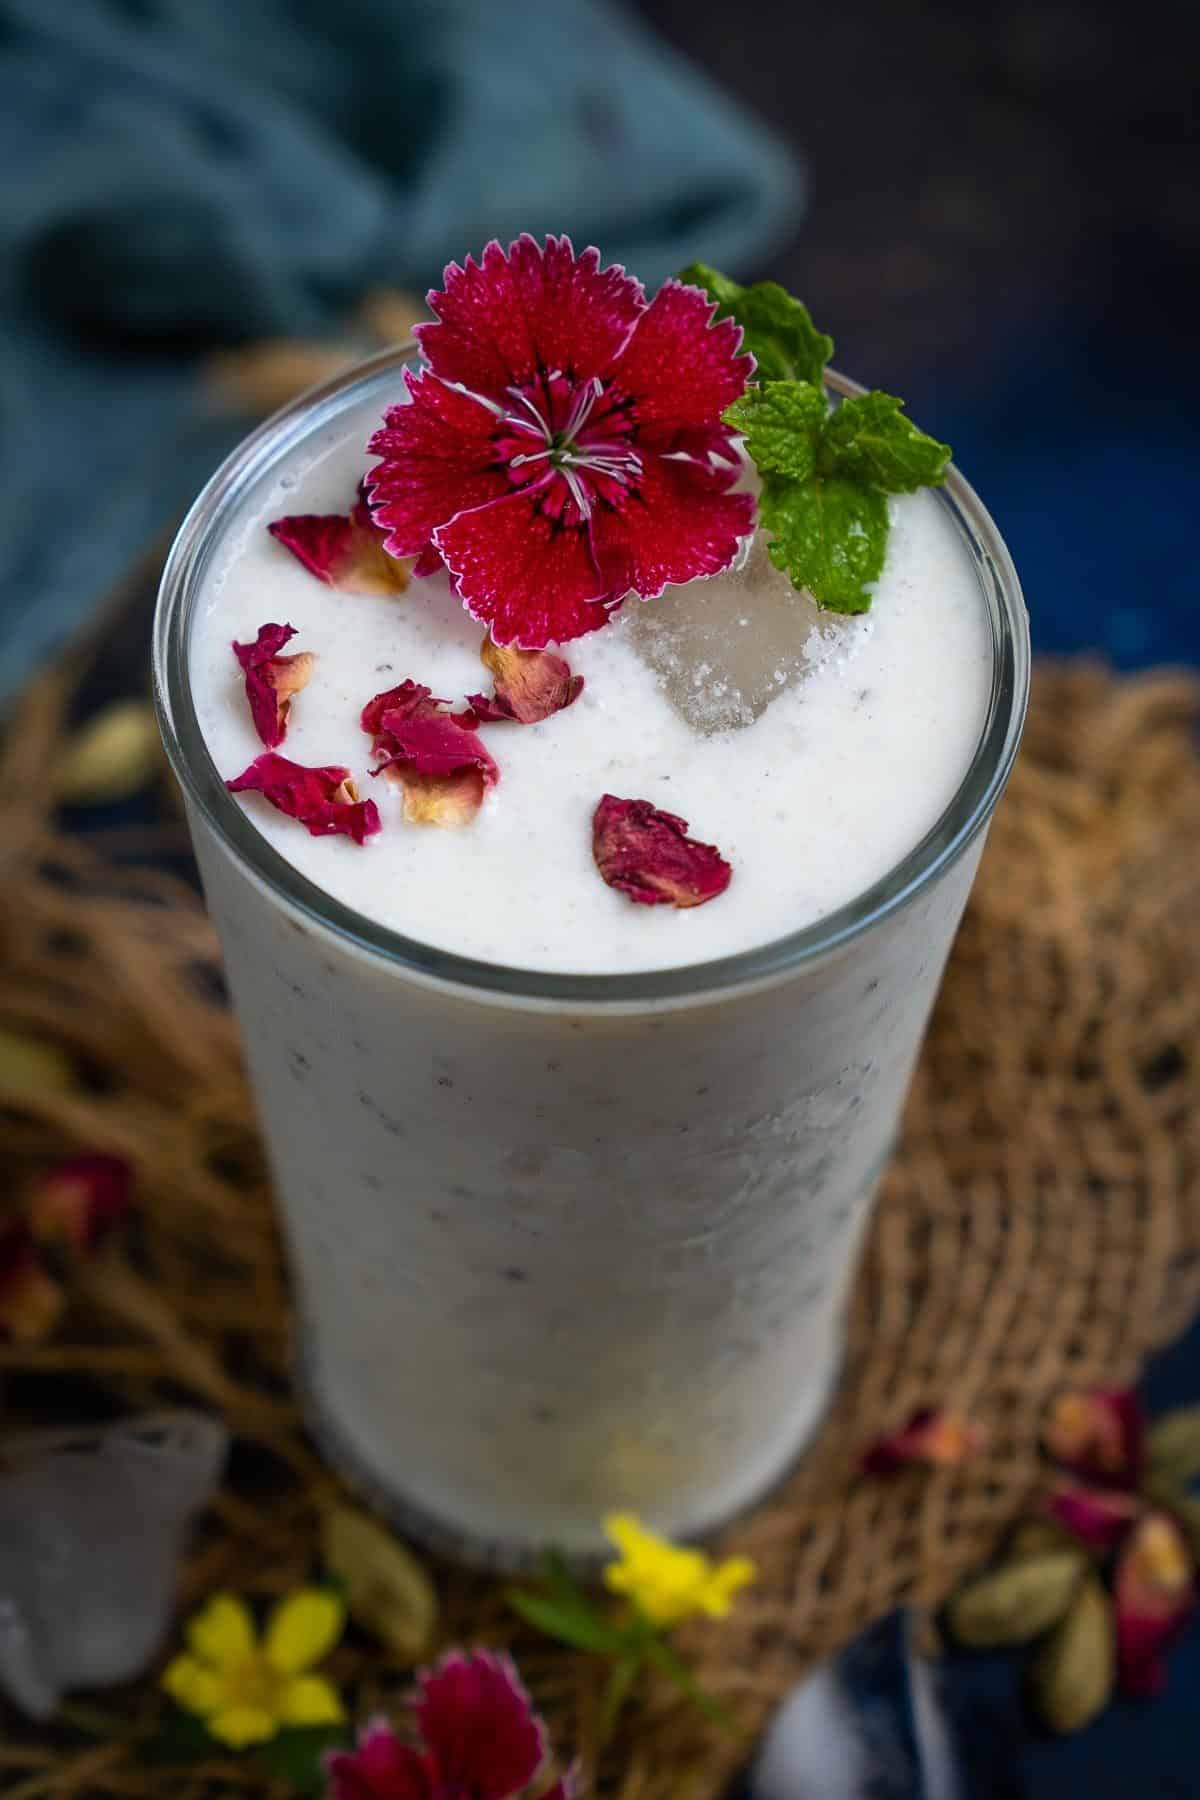 Sweet lassi served in a glass.